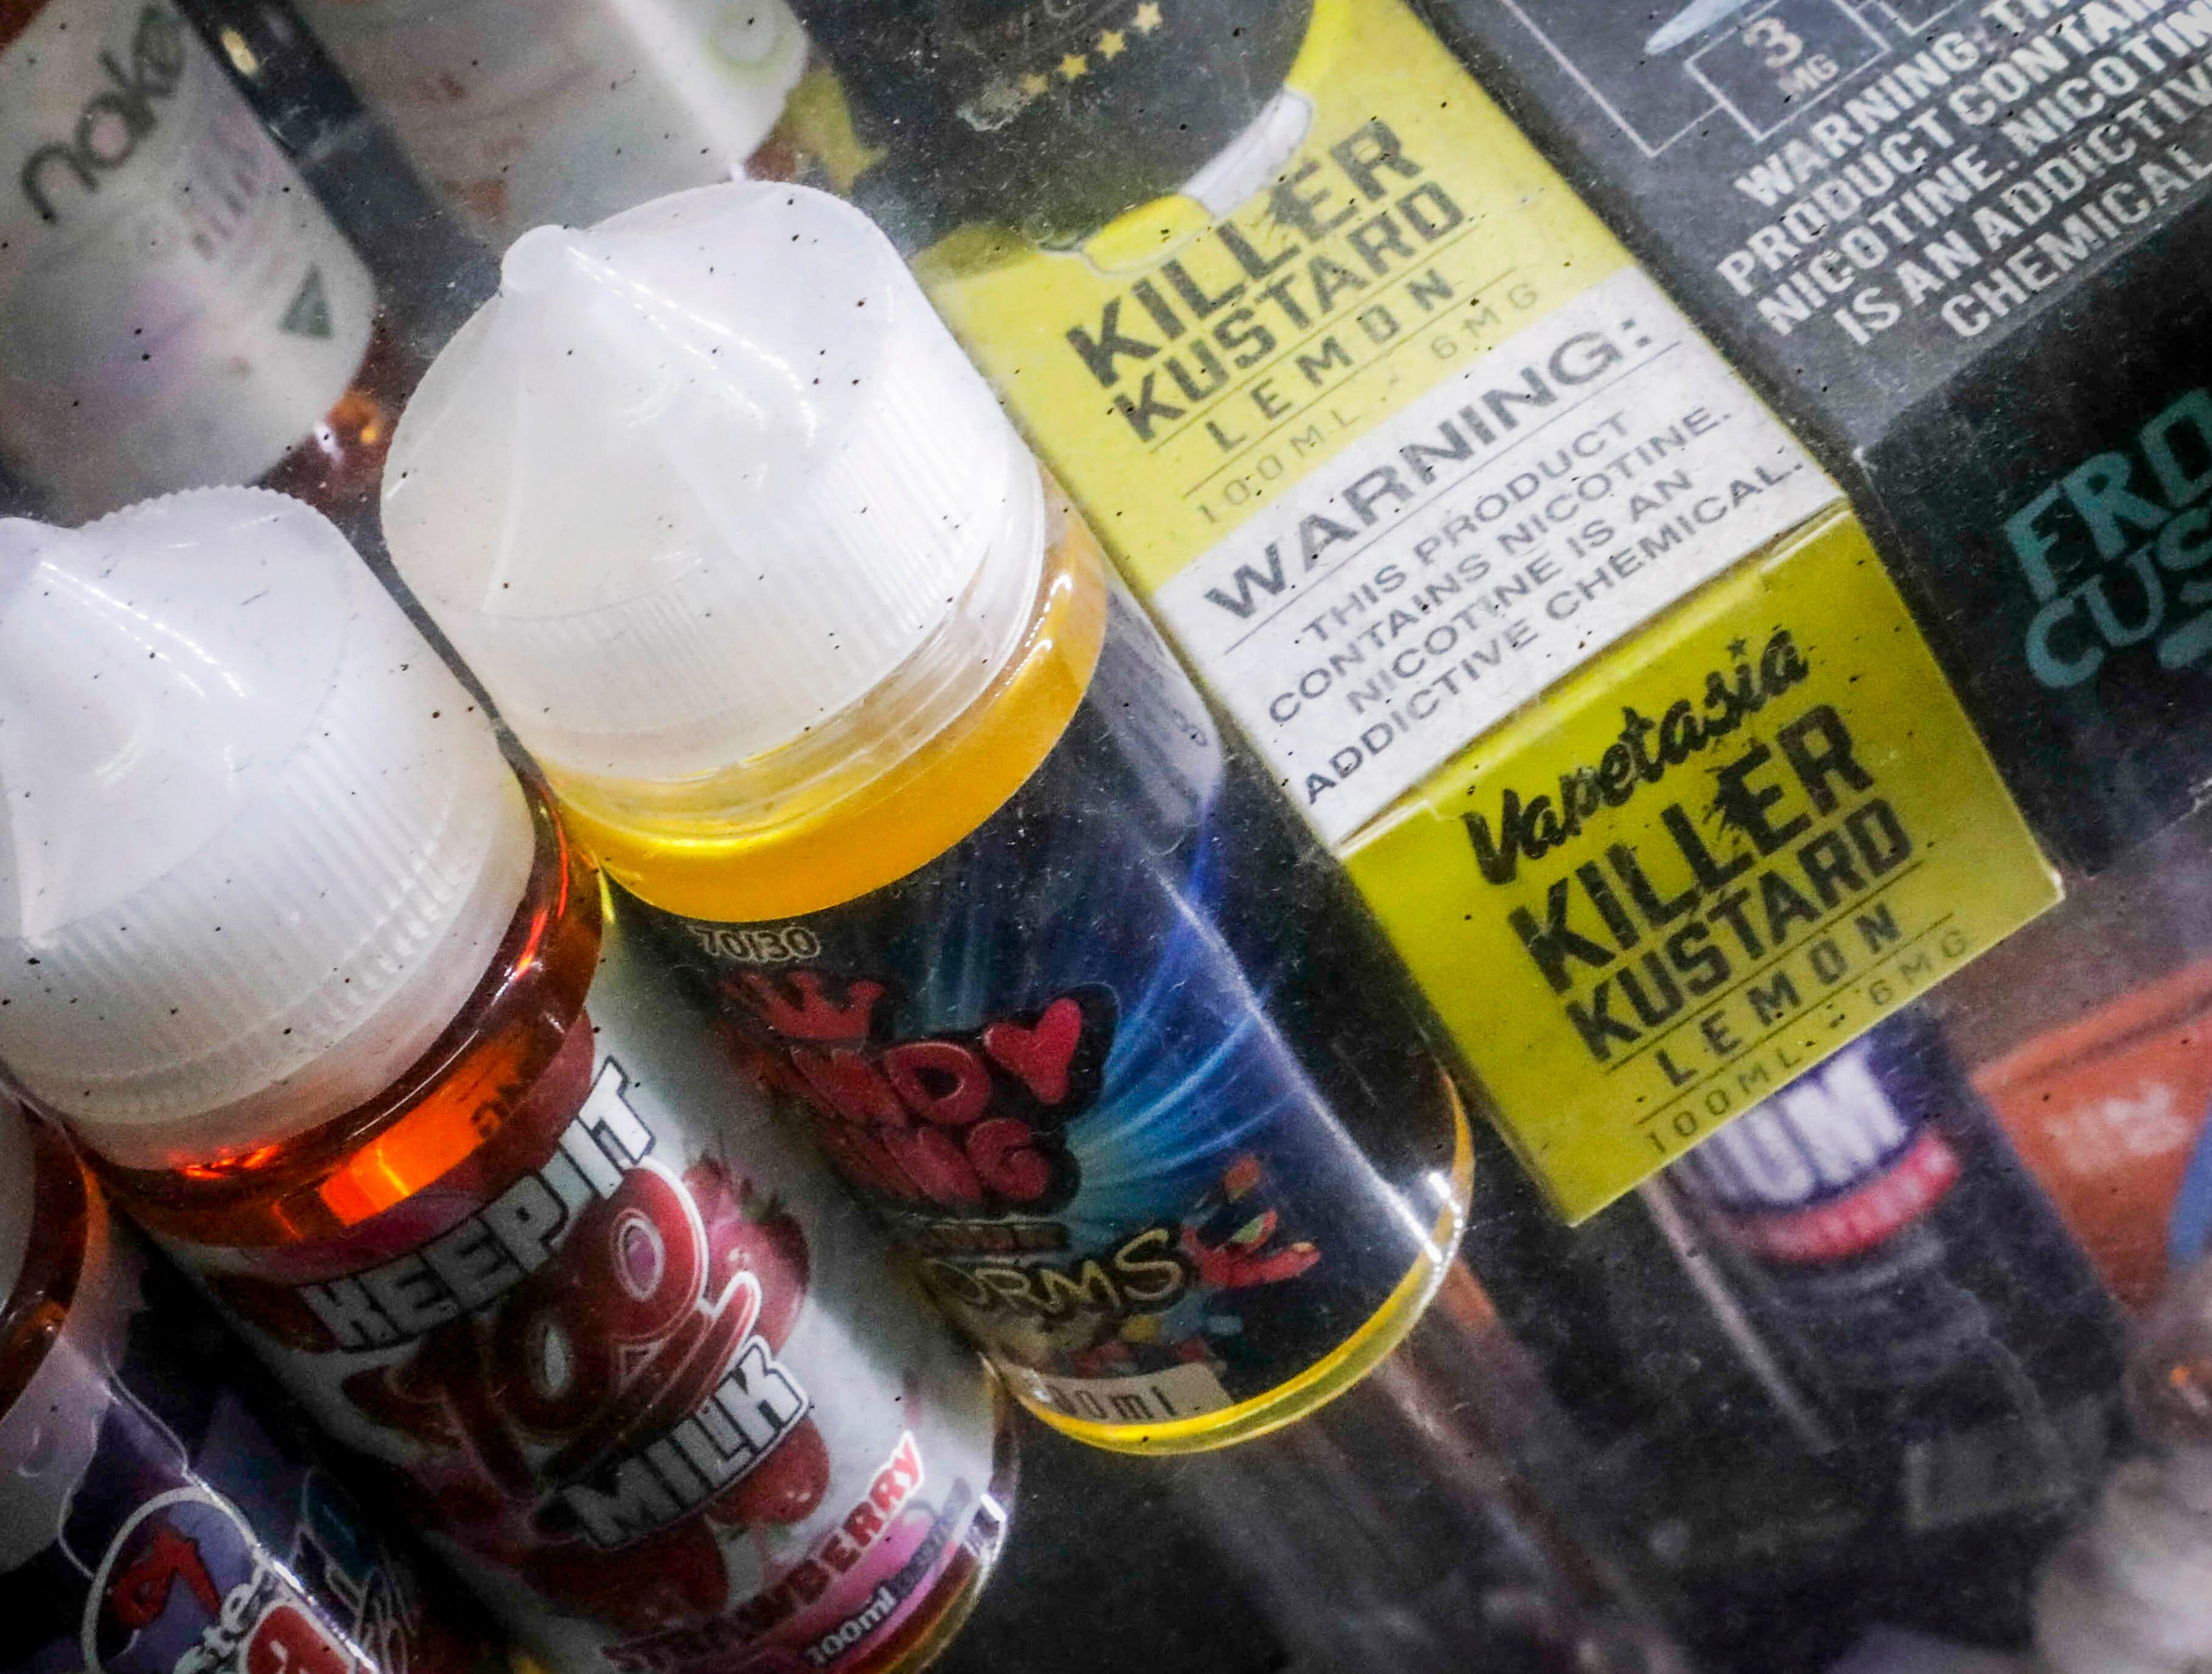 Judge temporarily halts flavored vape ban in Michigan, cites harm to businesses